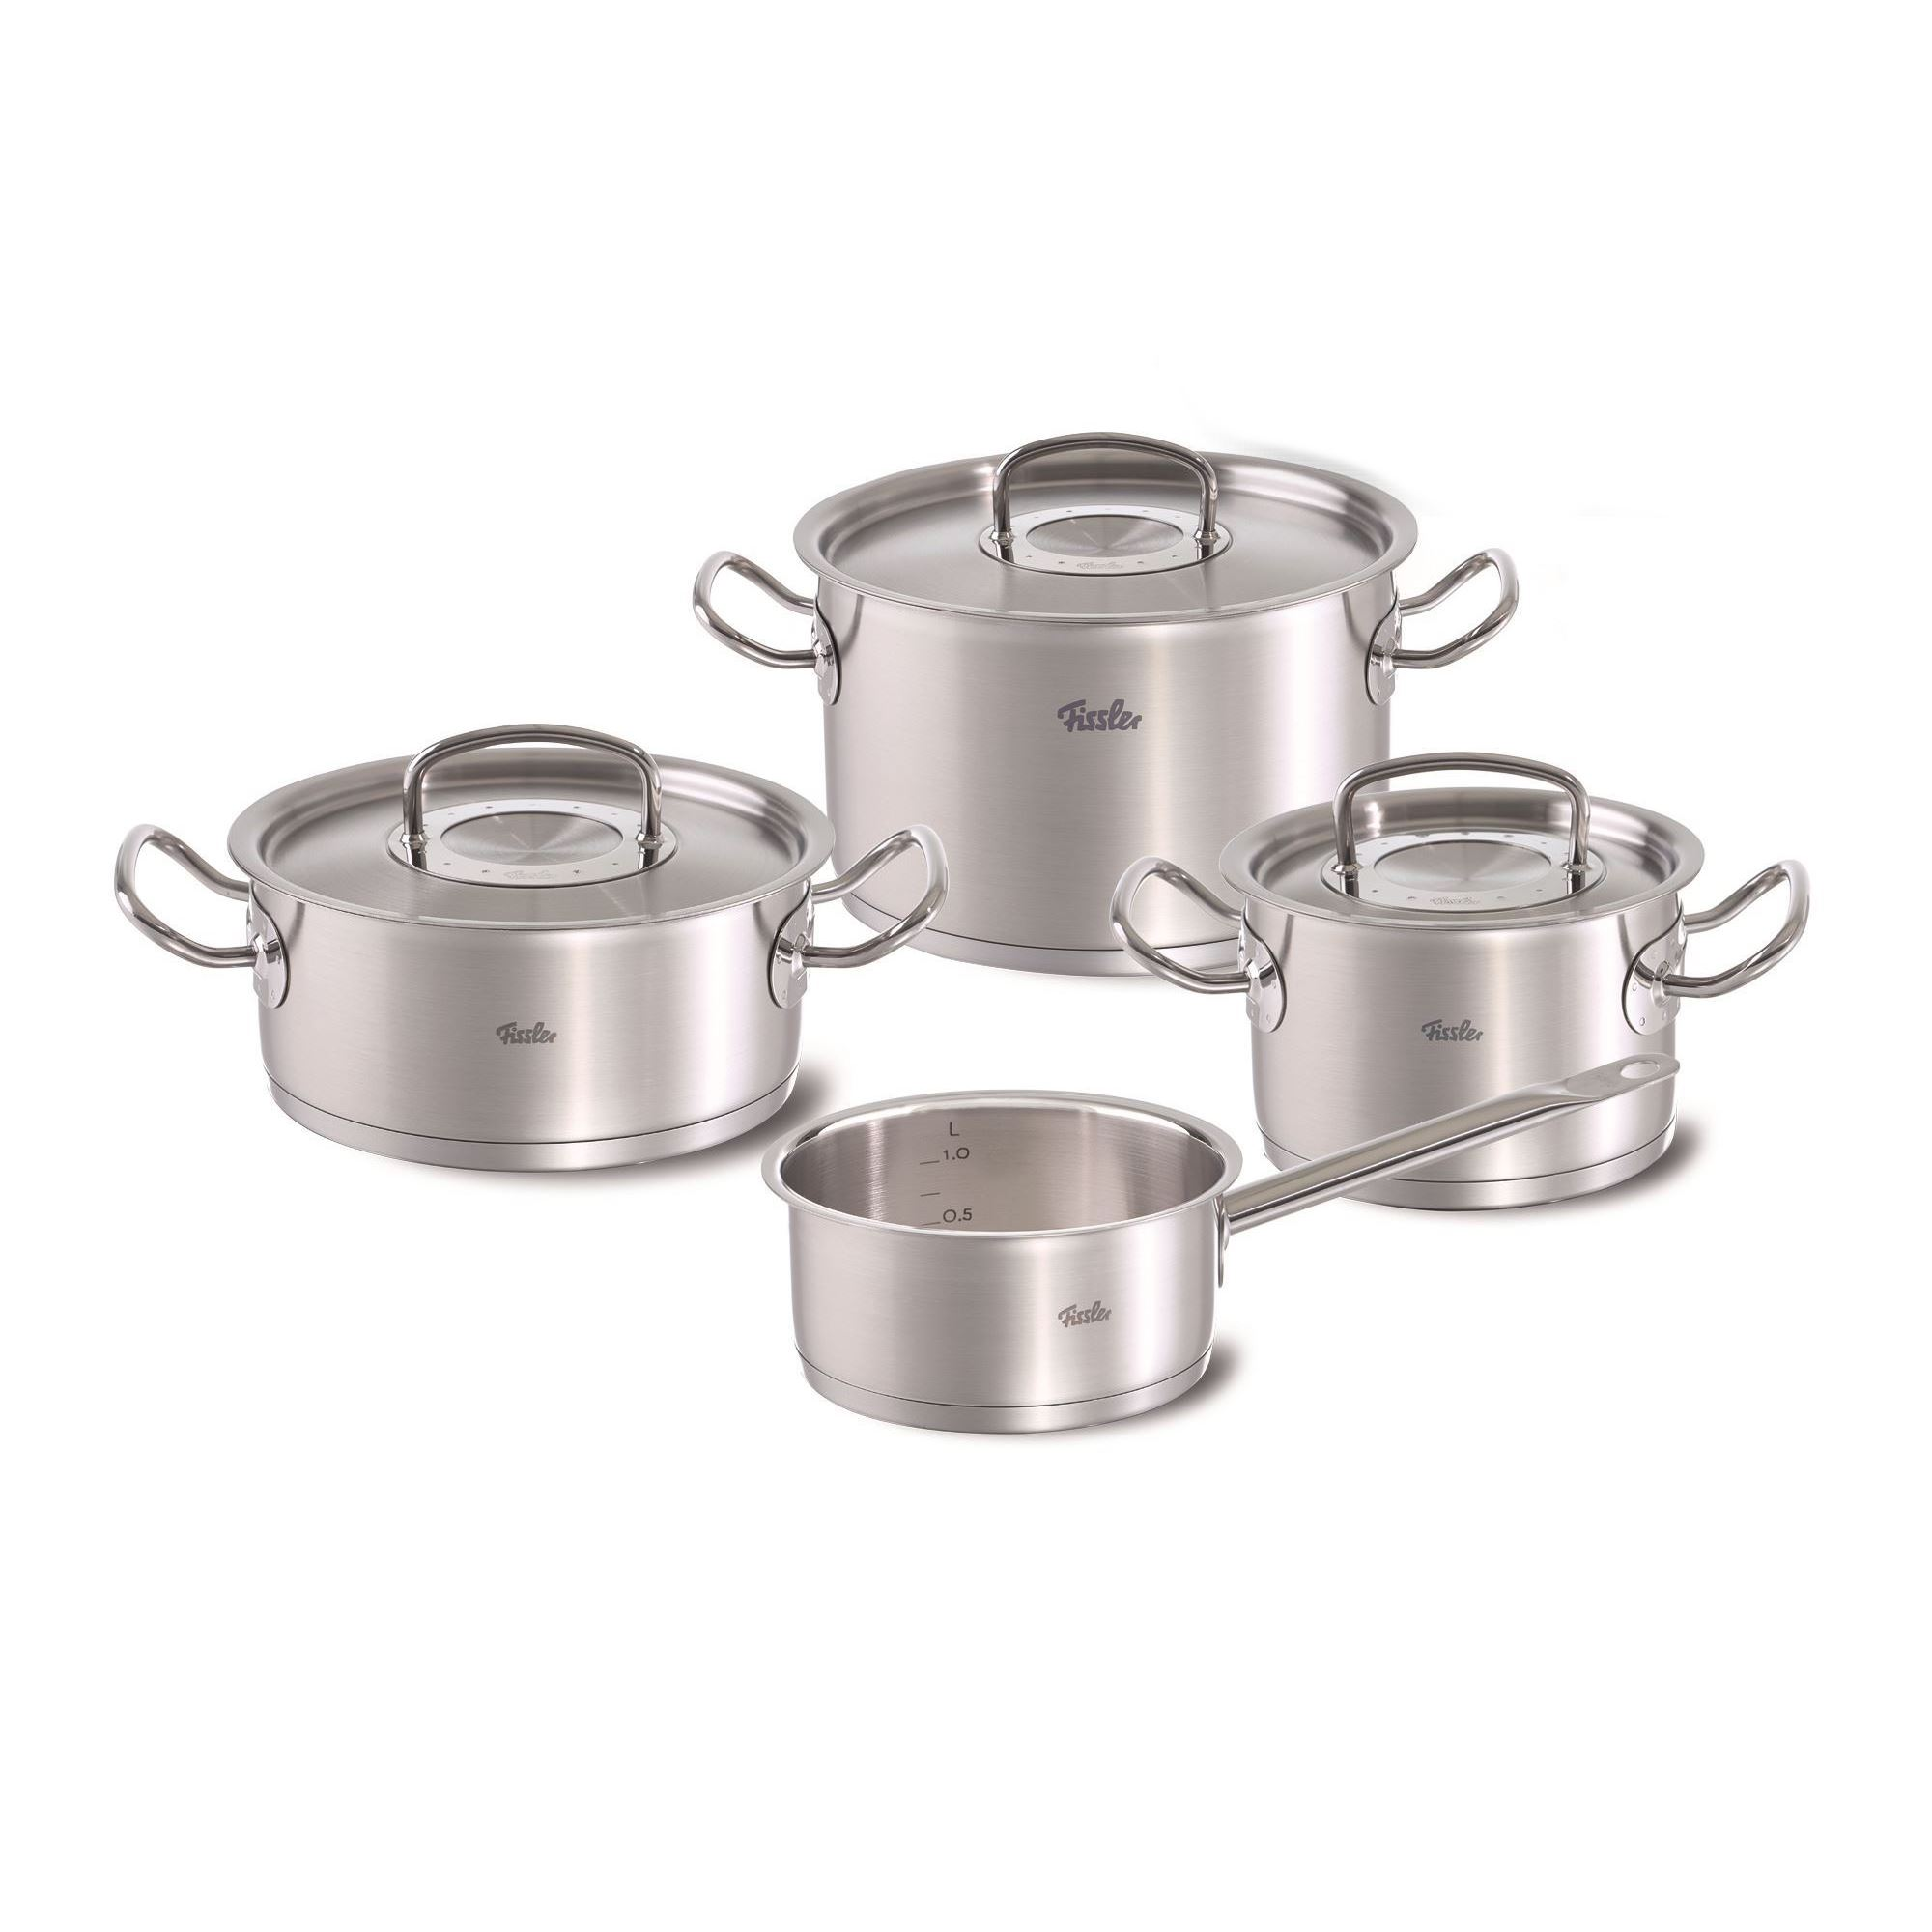 Fissler Profi Collection Set Fissler Profi Collection Fissler Casserole Profi